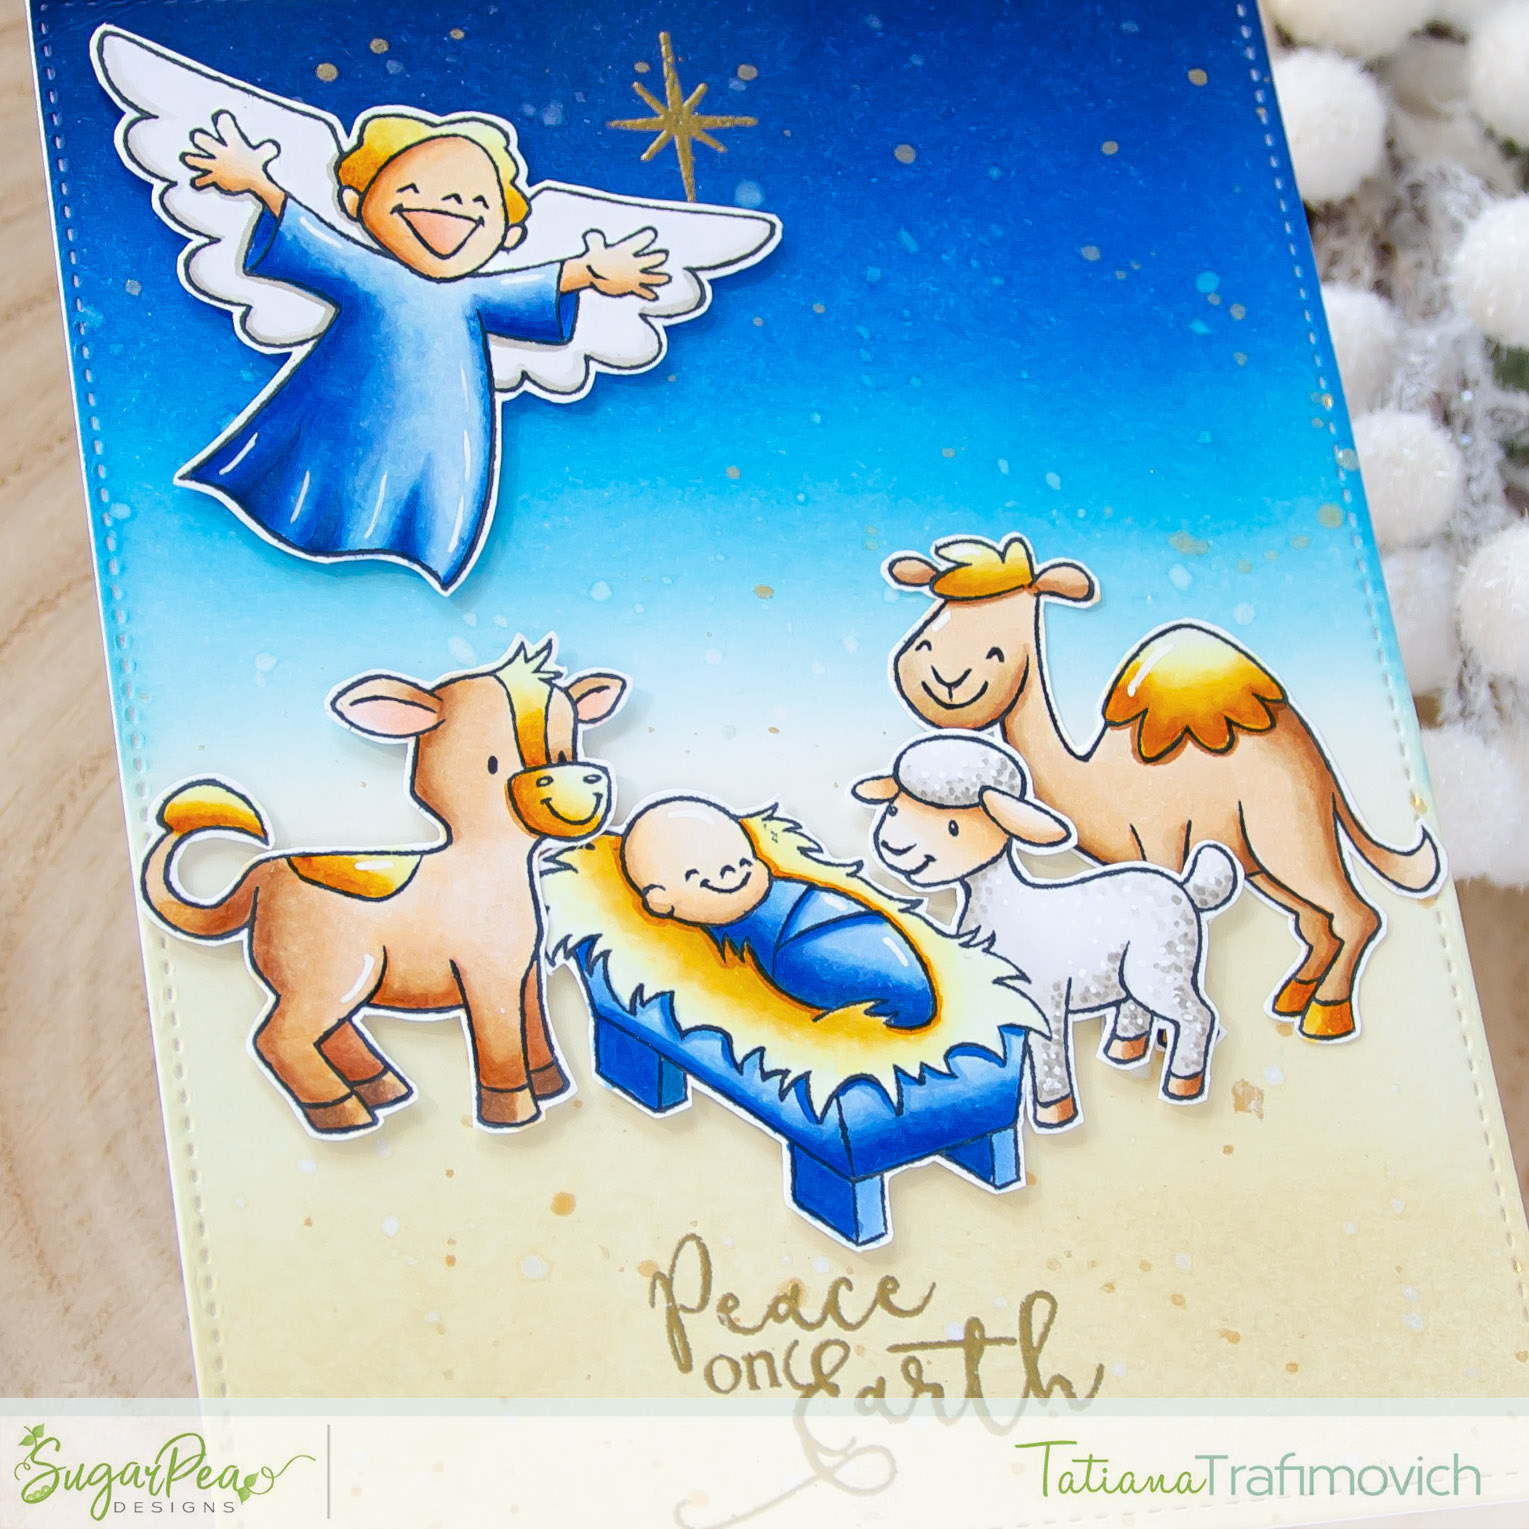 Peace On Earth #handmade card by Tatiana Trafimovich #tatianacraftandart - Come Let Us Adore Him stamp set by SugarPea Designs #sugarpeadesigns